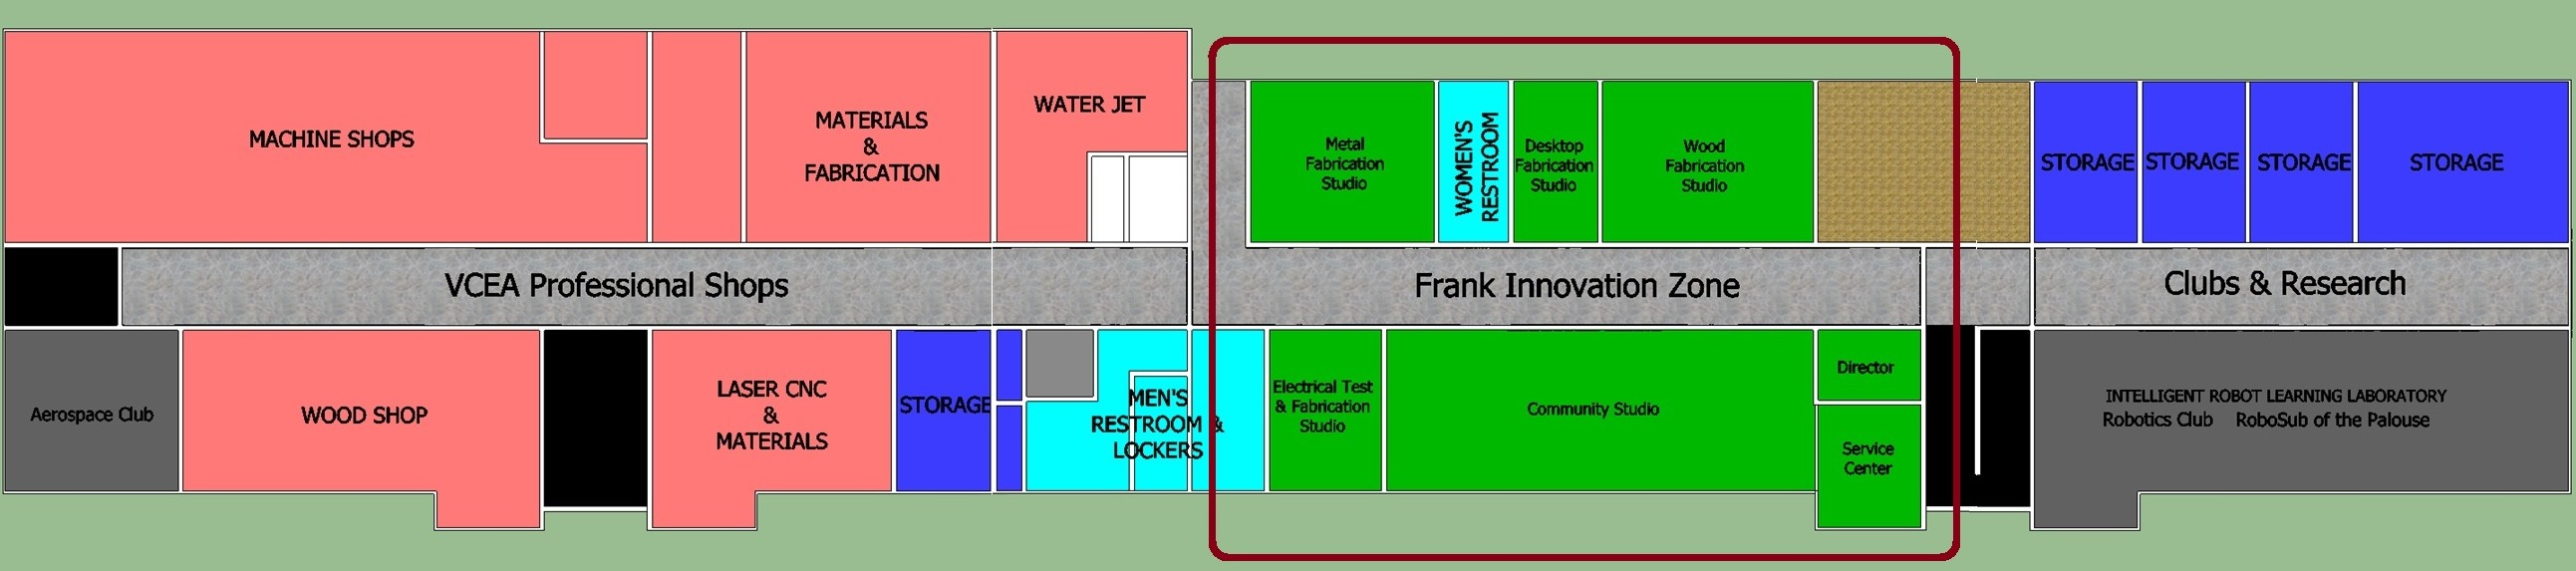 Partial floor plan of Dana Hall basement highlighting area dedicated to the Frank Innovation Zone.